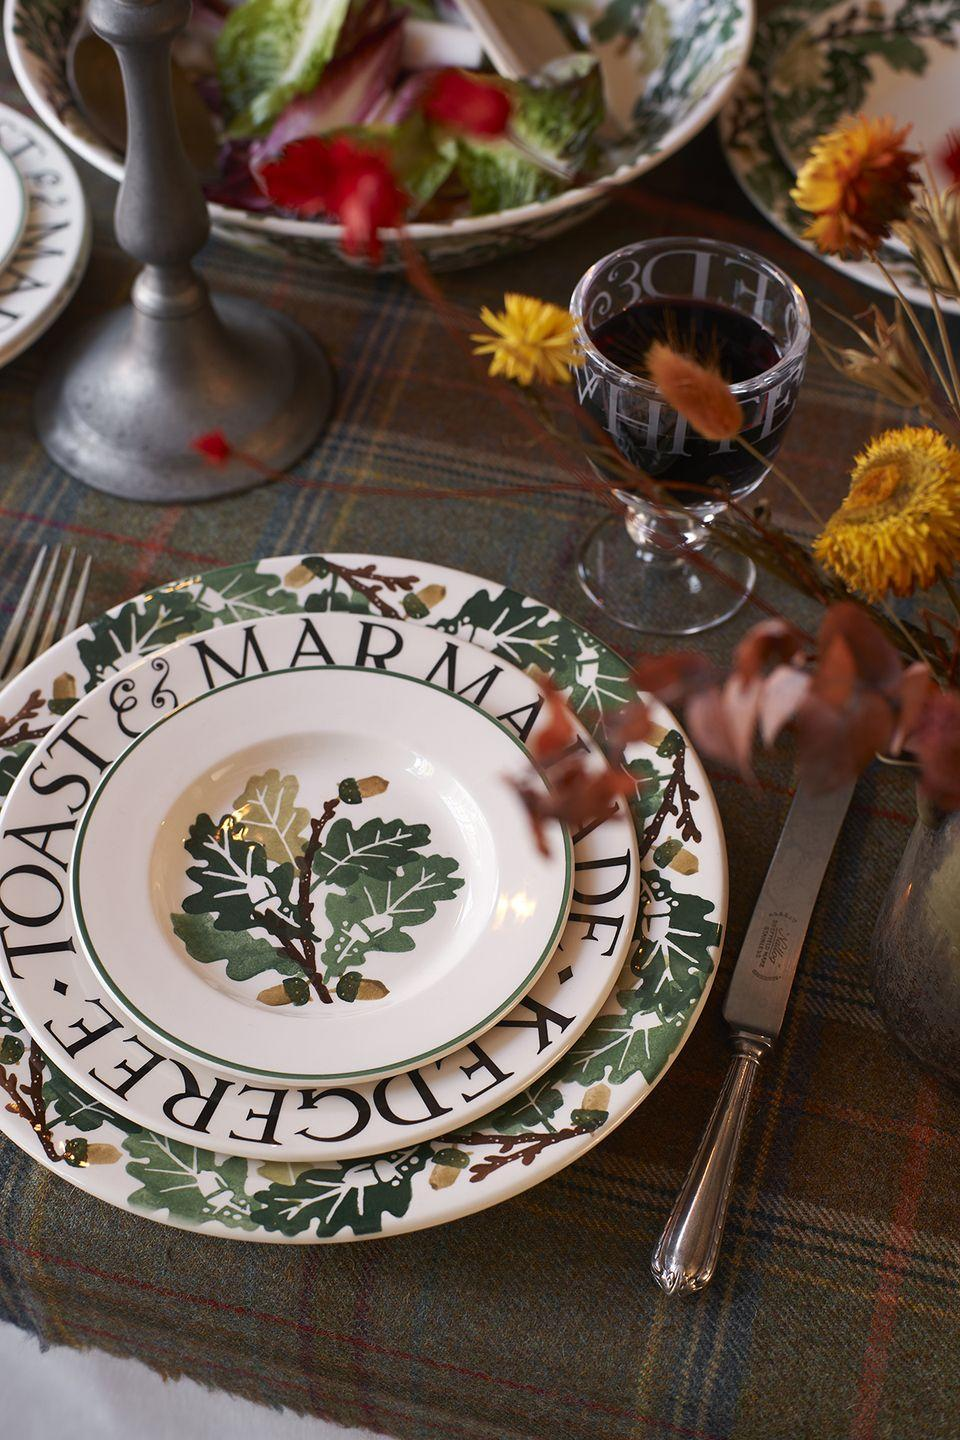 """<p>Elevate your dinnerware with Emma Bridgewater's autumnal-inspired plate set. It's right at the top of our wish list...</p><p>'Britain's mild damp climate is kind to trees, and there is no tree more magnificent than the Oak,' the team at Emma Bridgewater say. 'New for this autumn, the Oak collection features the mighty tree's foliage in a sponge pattern covering mugs, plates, platters, bowls and jam-jar vases.'</p><p><a class=""""link rapid-noclick-resp"""" href=""""https://go.redirectingat.com?id=127X1599956&url=https%3A%2F%2Fwww.emmabridgewater.co.uk%2Fcollections%2Foak&sref=https%3A%2F%2Fwww.housebeautiful.com%2Fuk%2Flifestyle%2Fshopping%2Fg37527696%2Femma-bridgewater-autumn-range%2F"""" rel=""""nofollow noopener"""" target=""""_blank"""" data-ylk=""""slk:SHOP THE RANGE"""">SHOP THE RANGE</a></p>"""